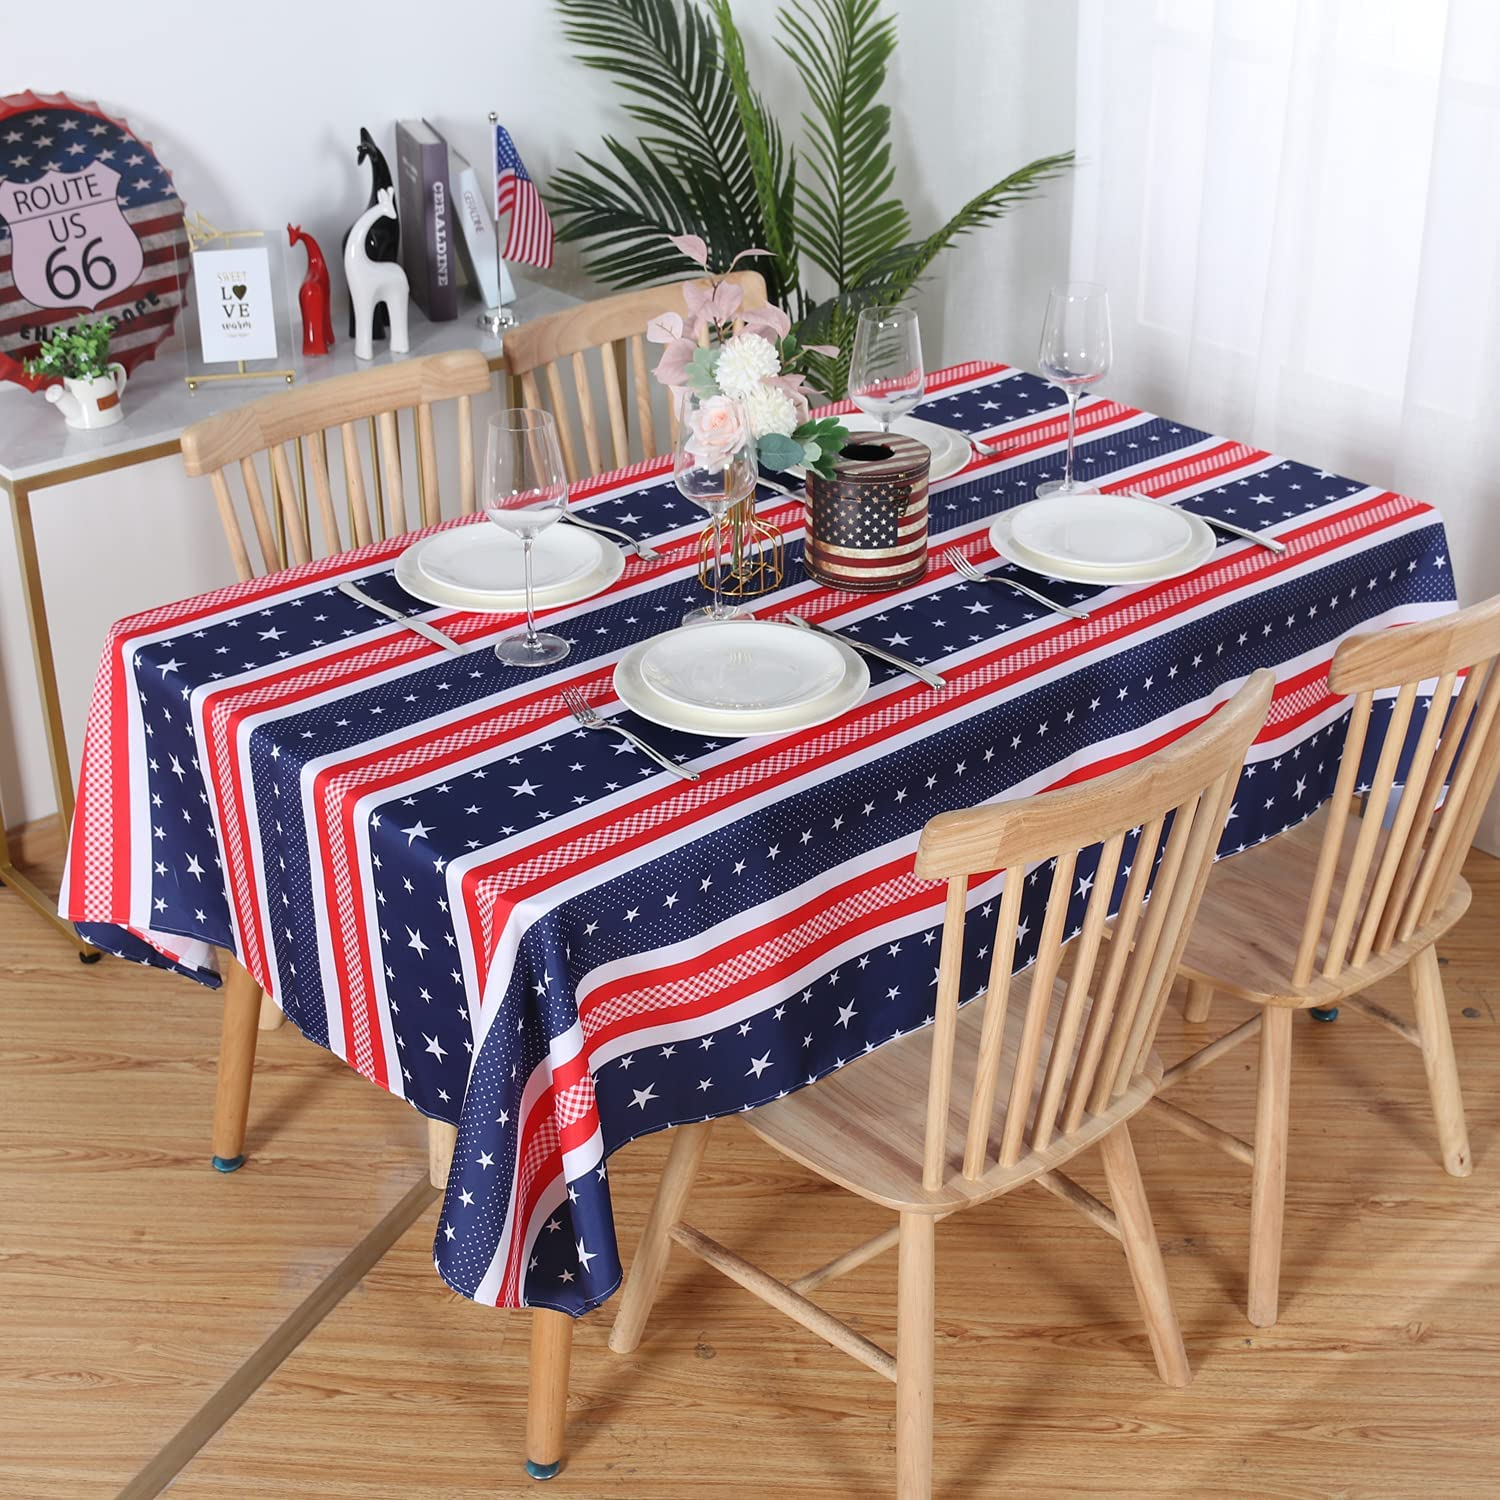 LUSHVIDA American Striped Rectangle Table Cloth, Polyester Stars Patriotic Plaid Tablecloth, Table Cover Protector for July 4th Independence Day Party Supply Decor, 60 x 120 Inch